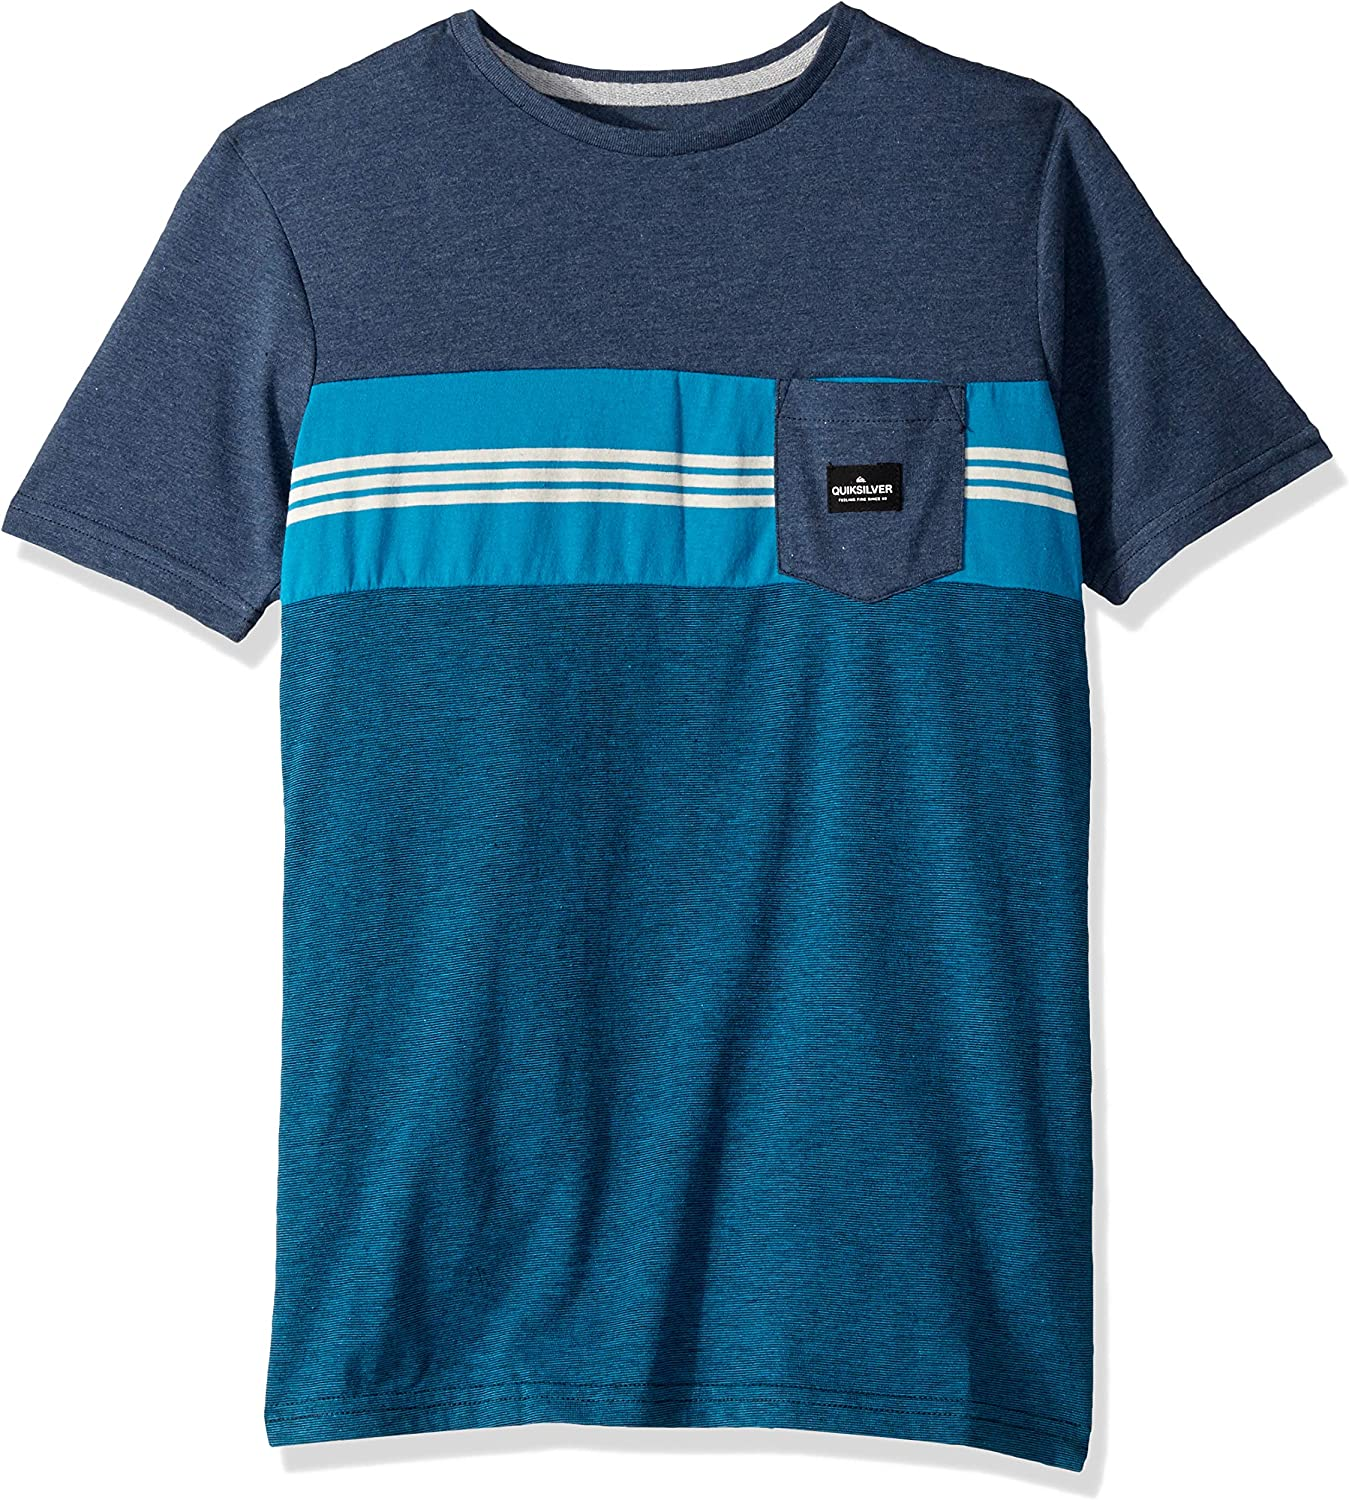 Quiksilver Boys' Big Holy 売店 Knit Top Kiss Youth 直営ストア